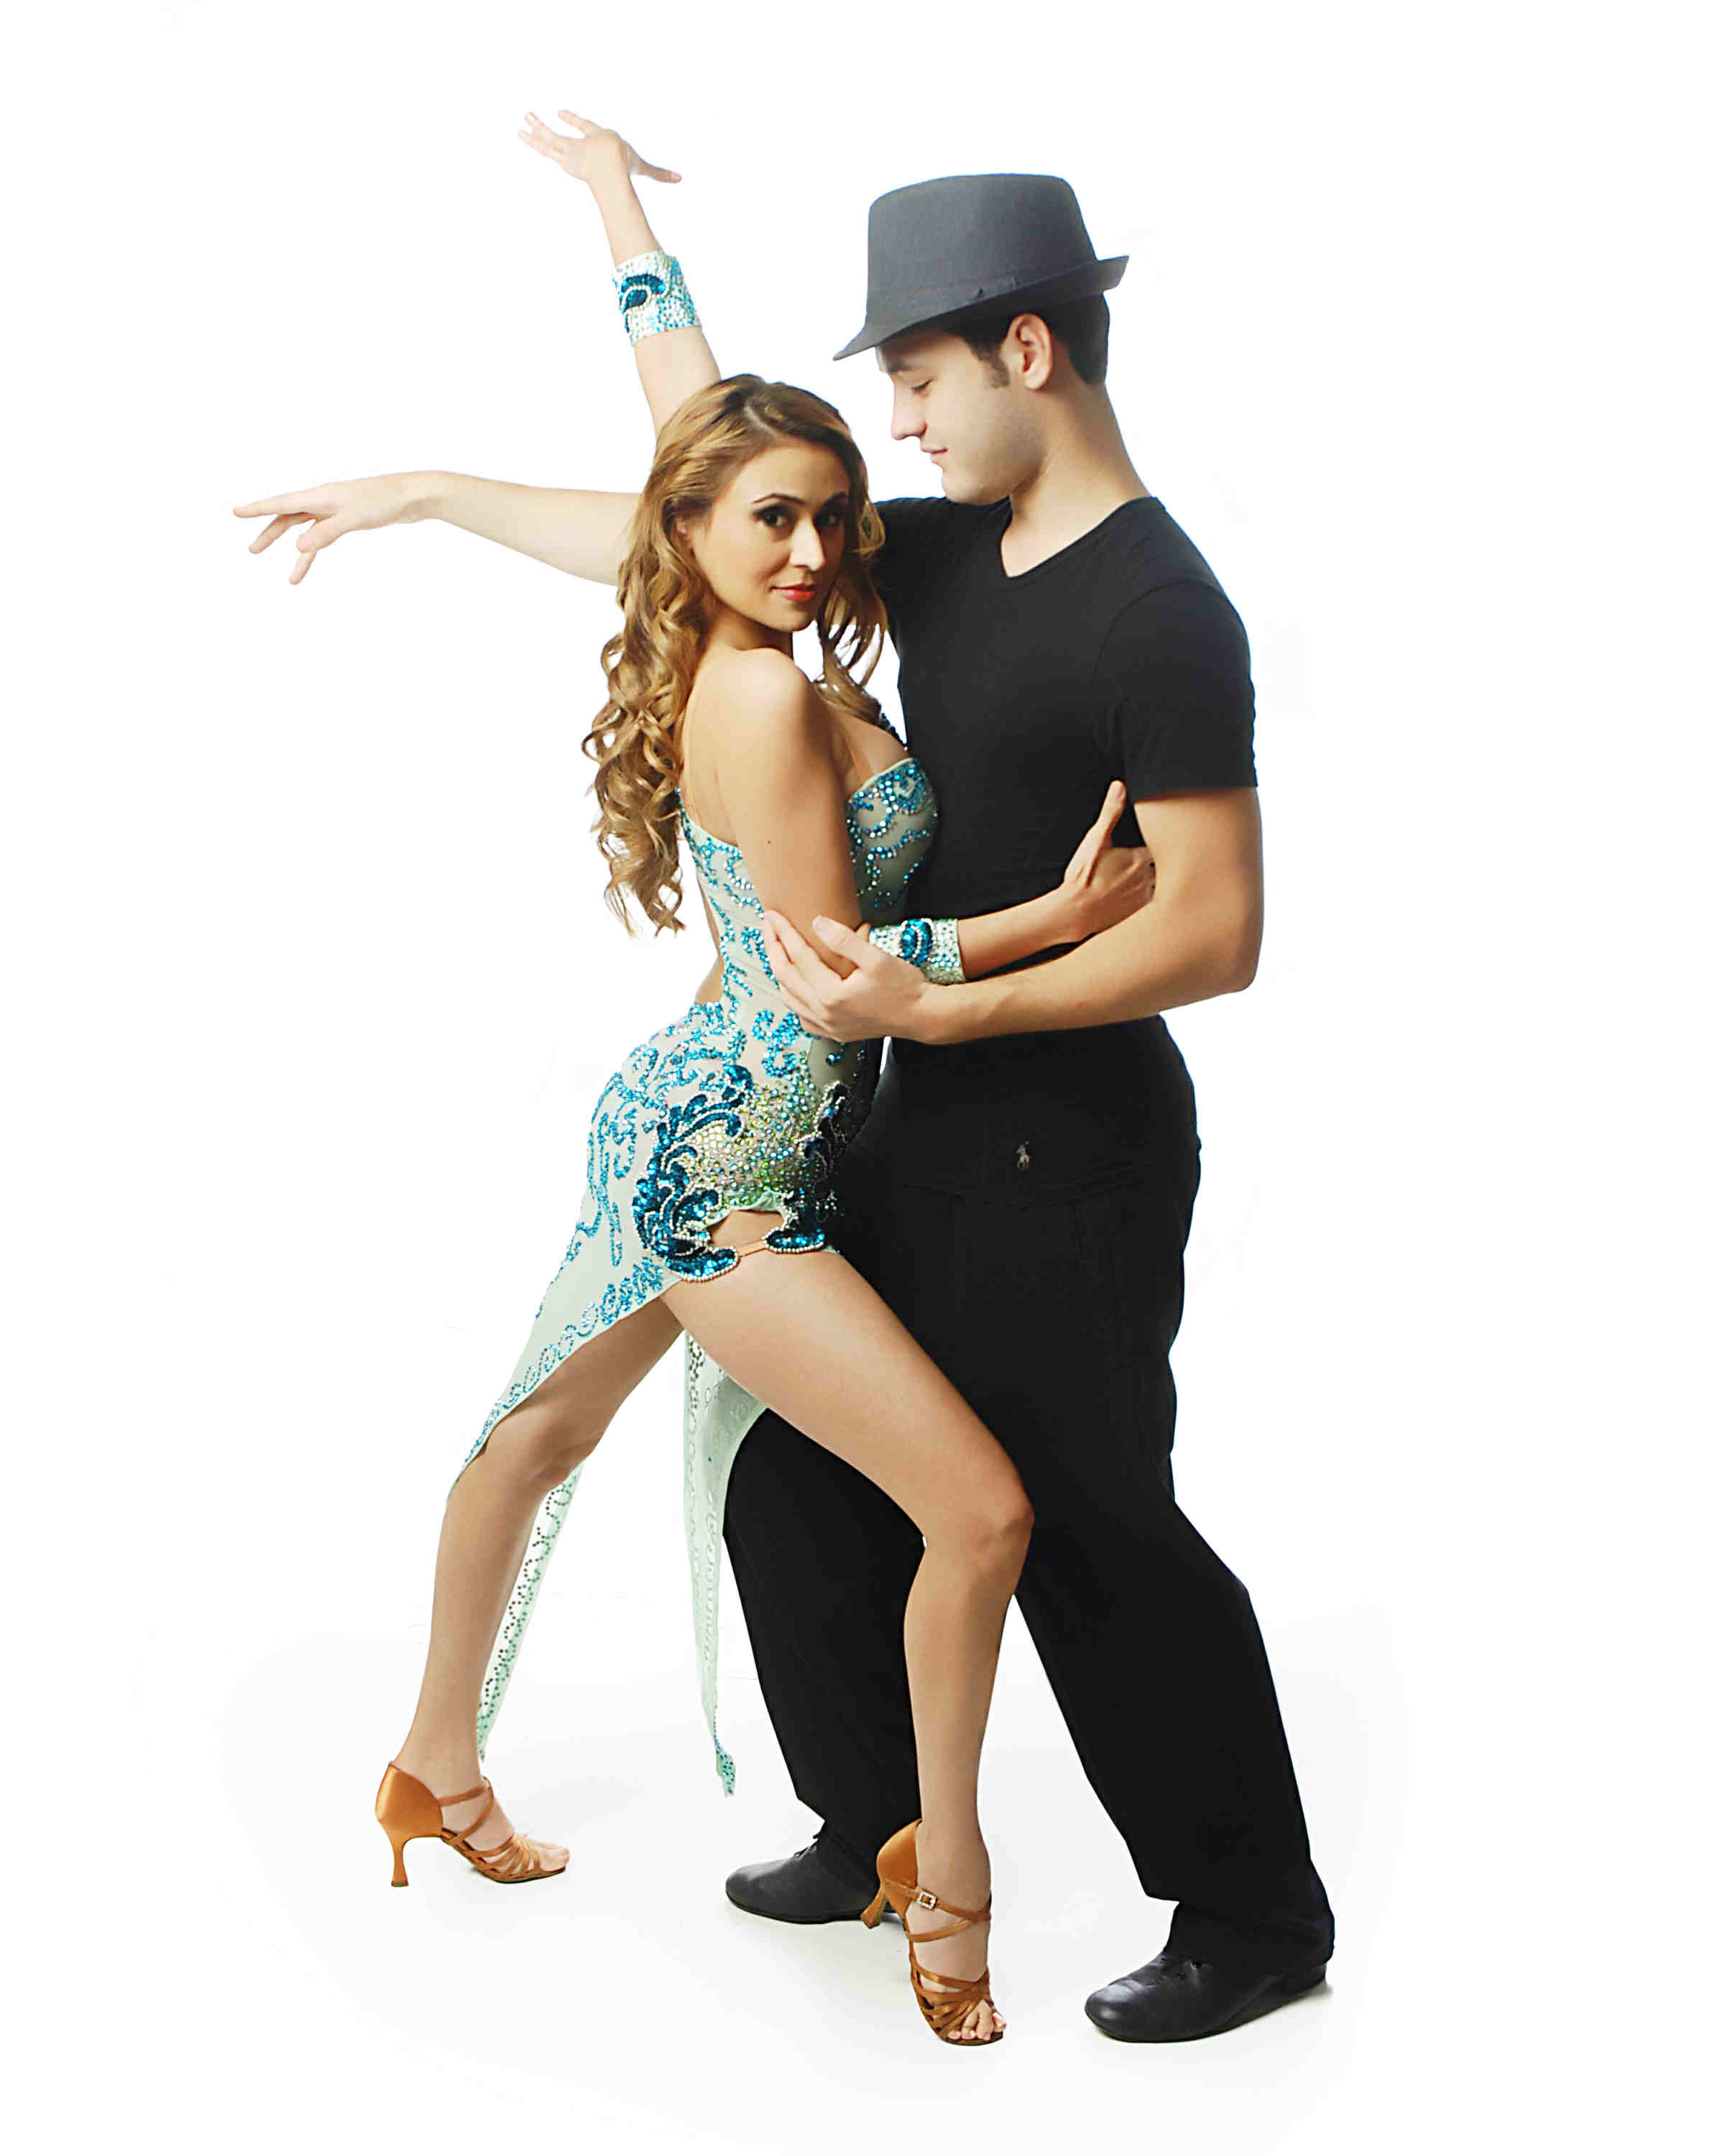 For more information on how to register for the salsa dance course, please see our